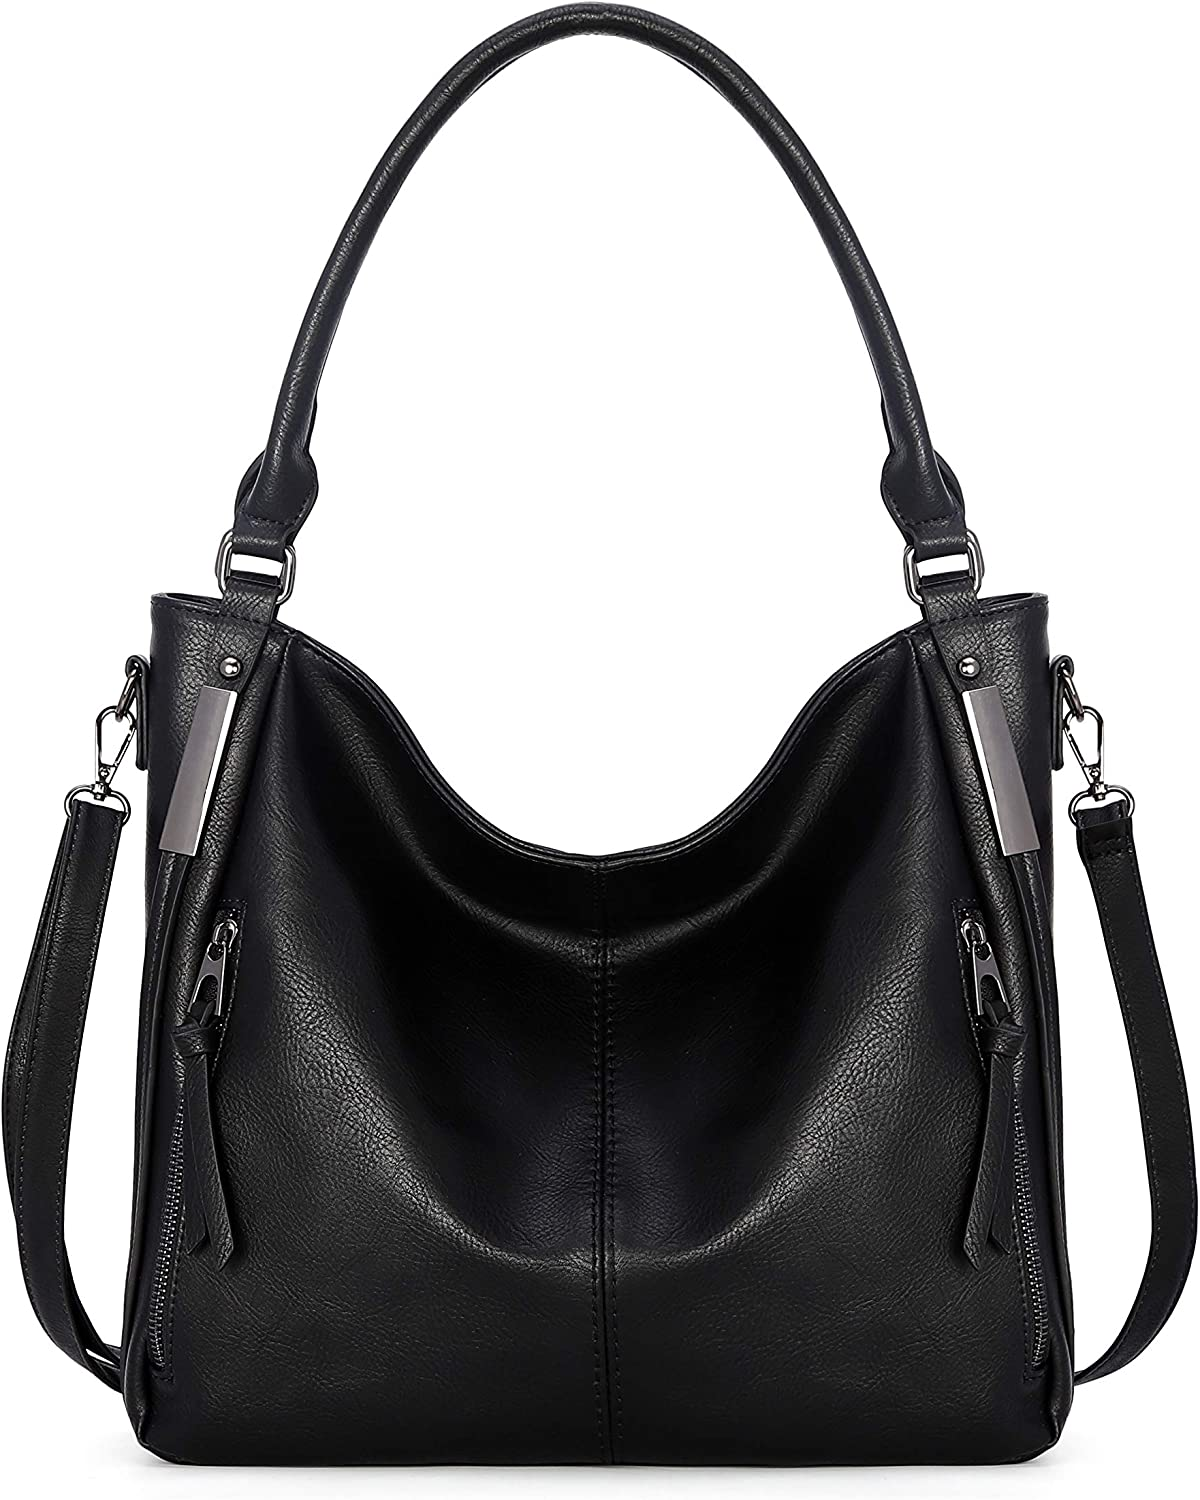 KL928 Womens Purses and Handbags PU Leather Shoulder Bag Waterproof Hobo Bags for Women Large